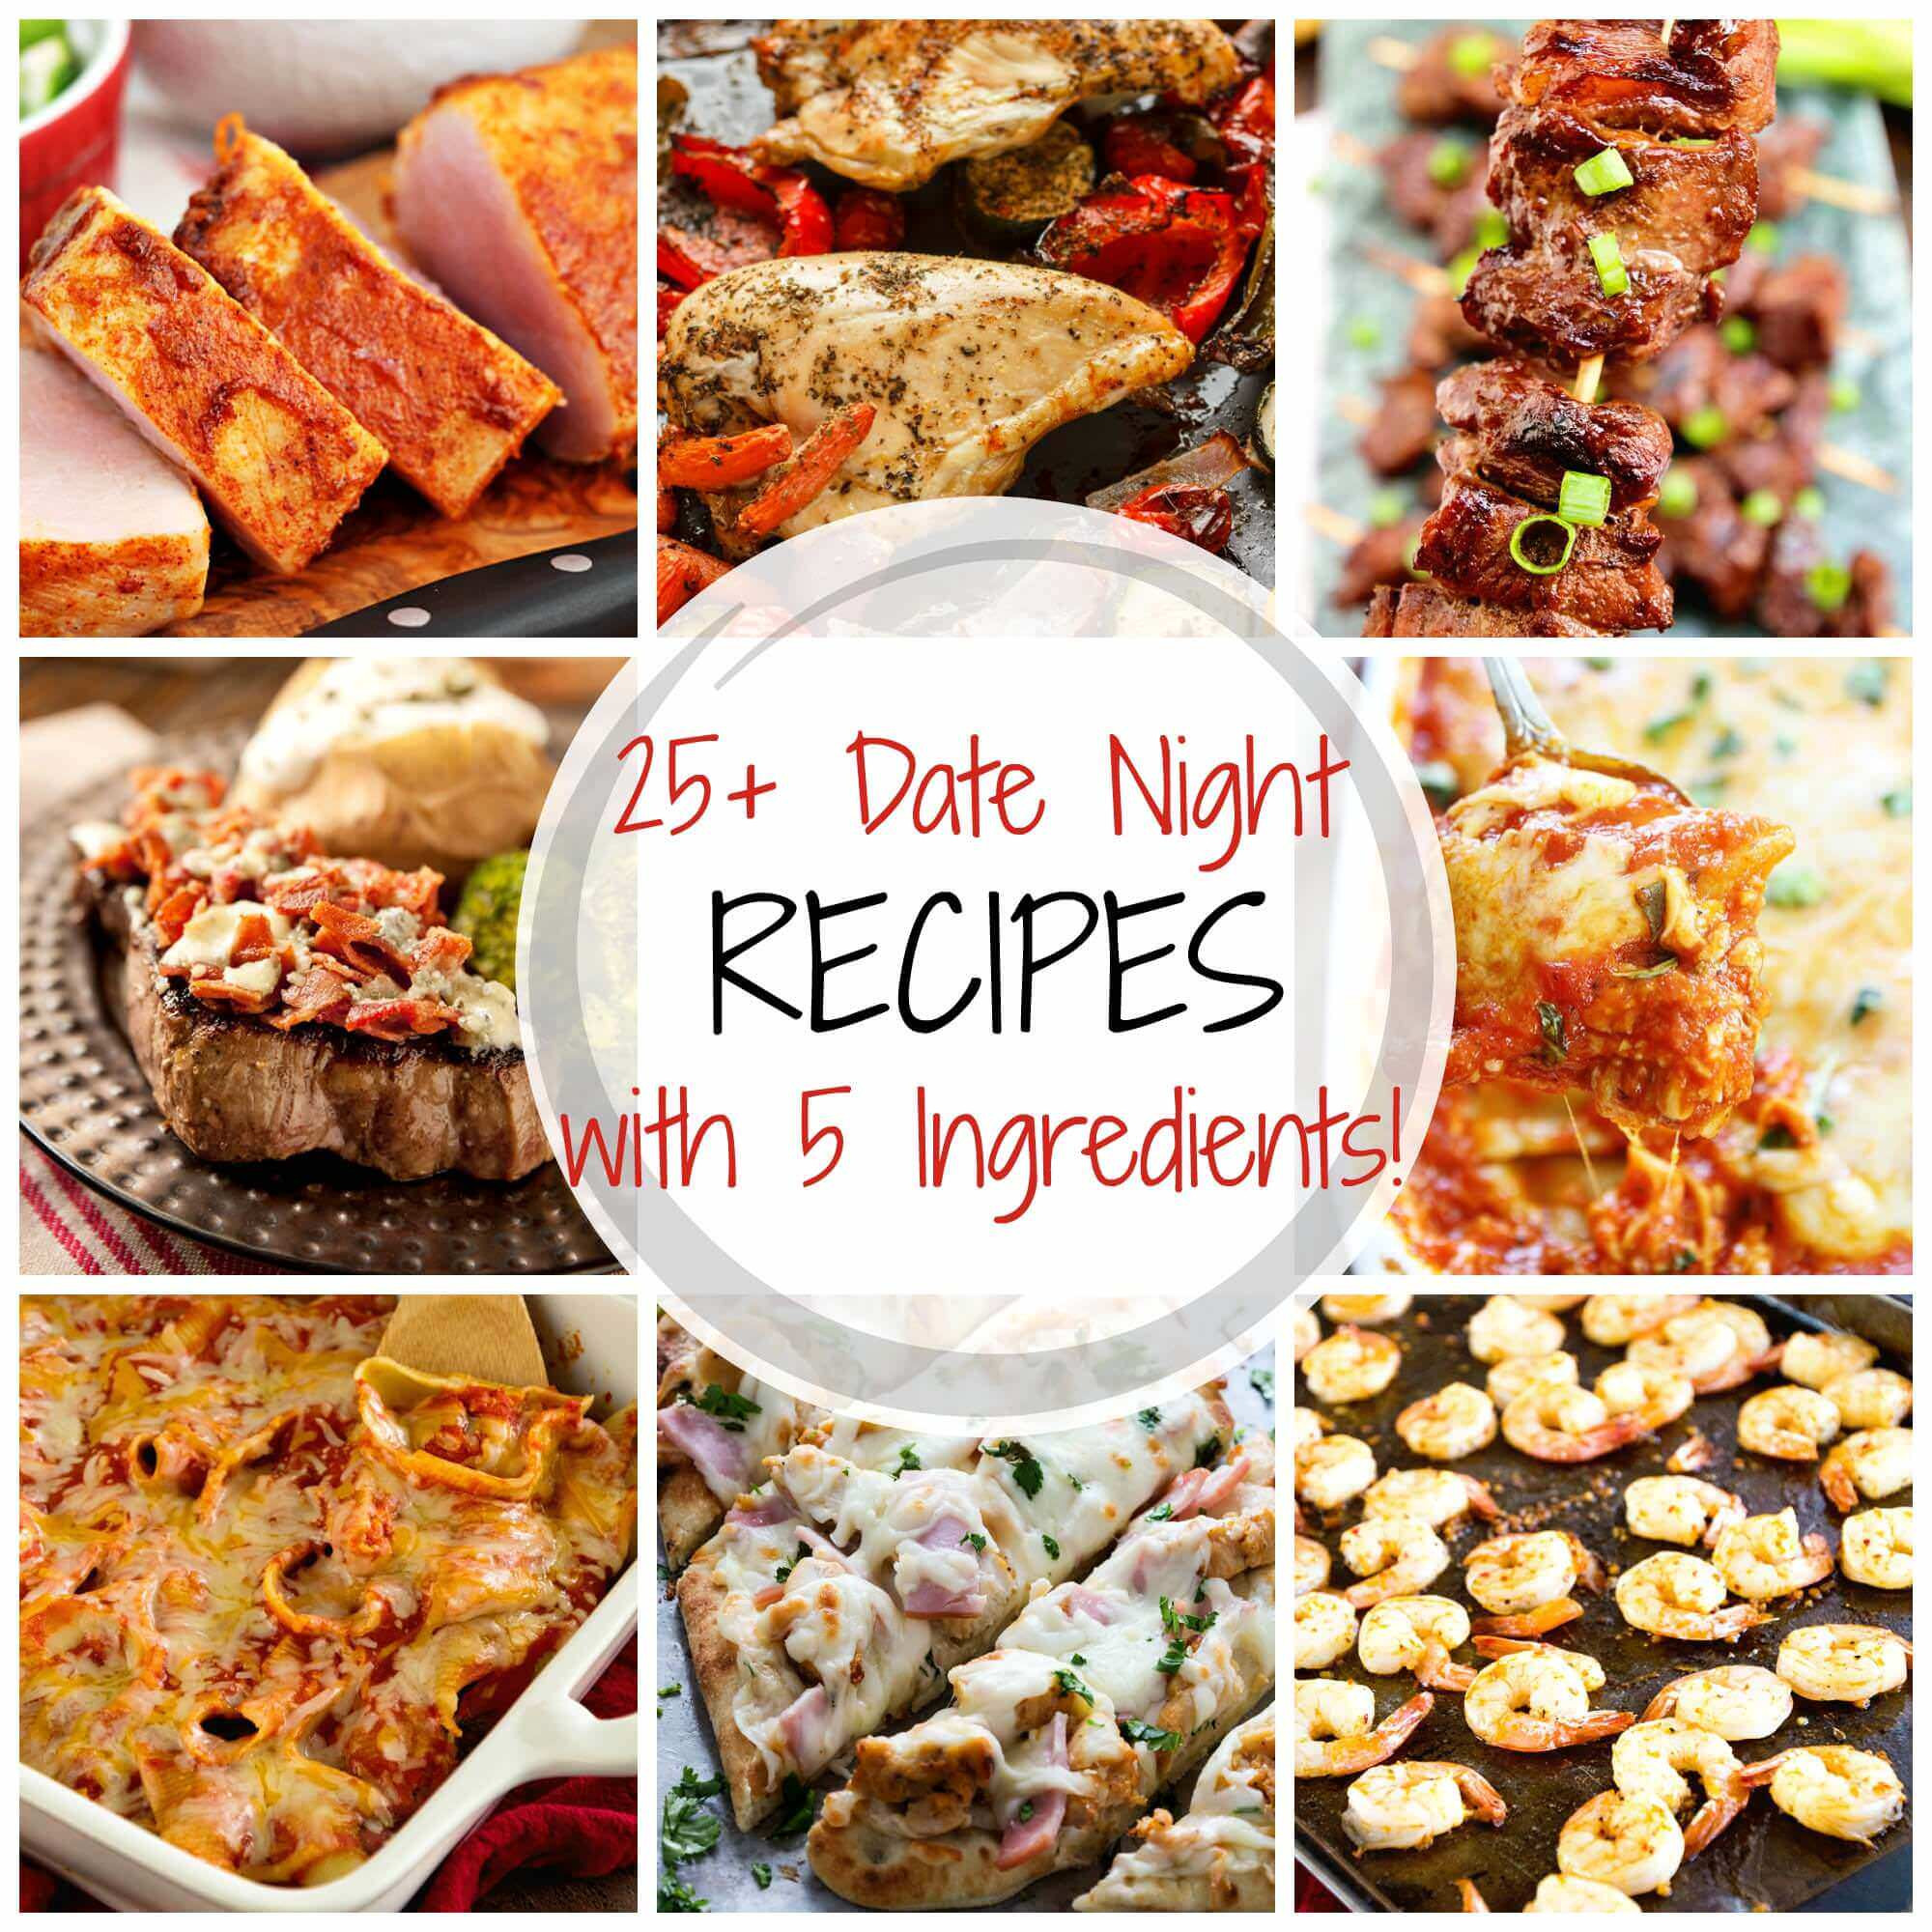 Date Night Dinners  25 Delicious Date Night Recipes with 5 Ingre nts or